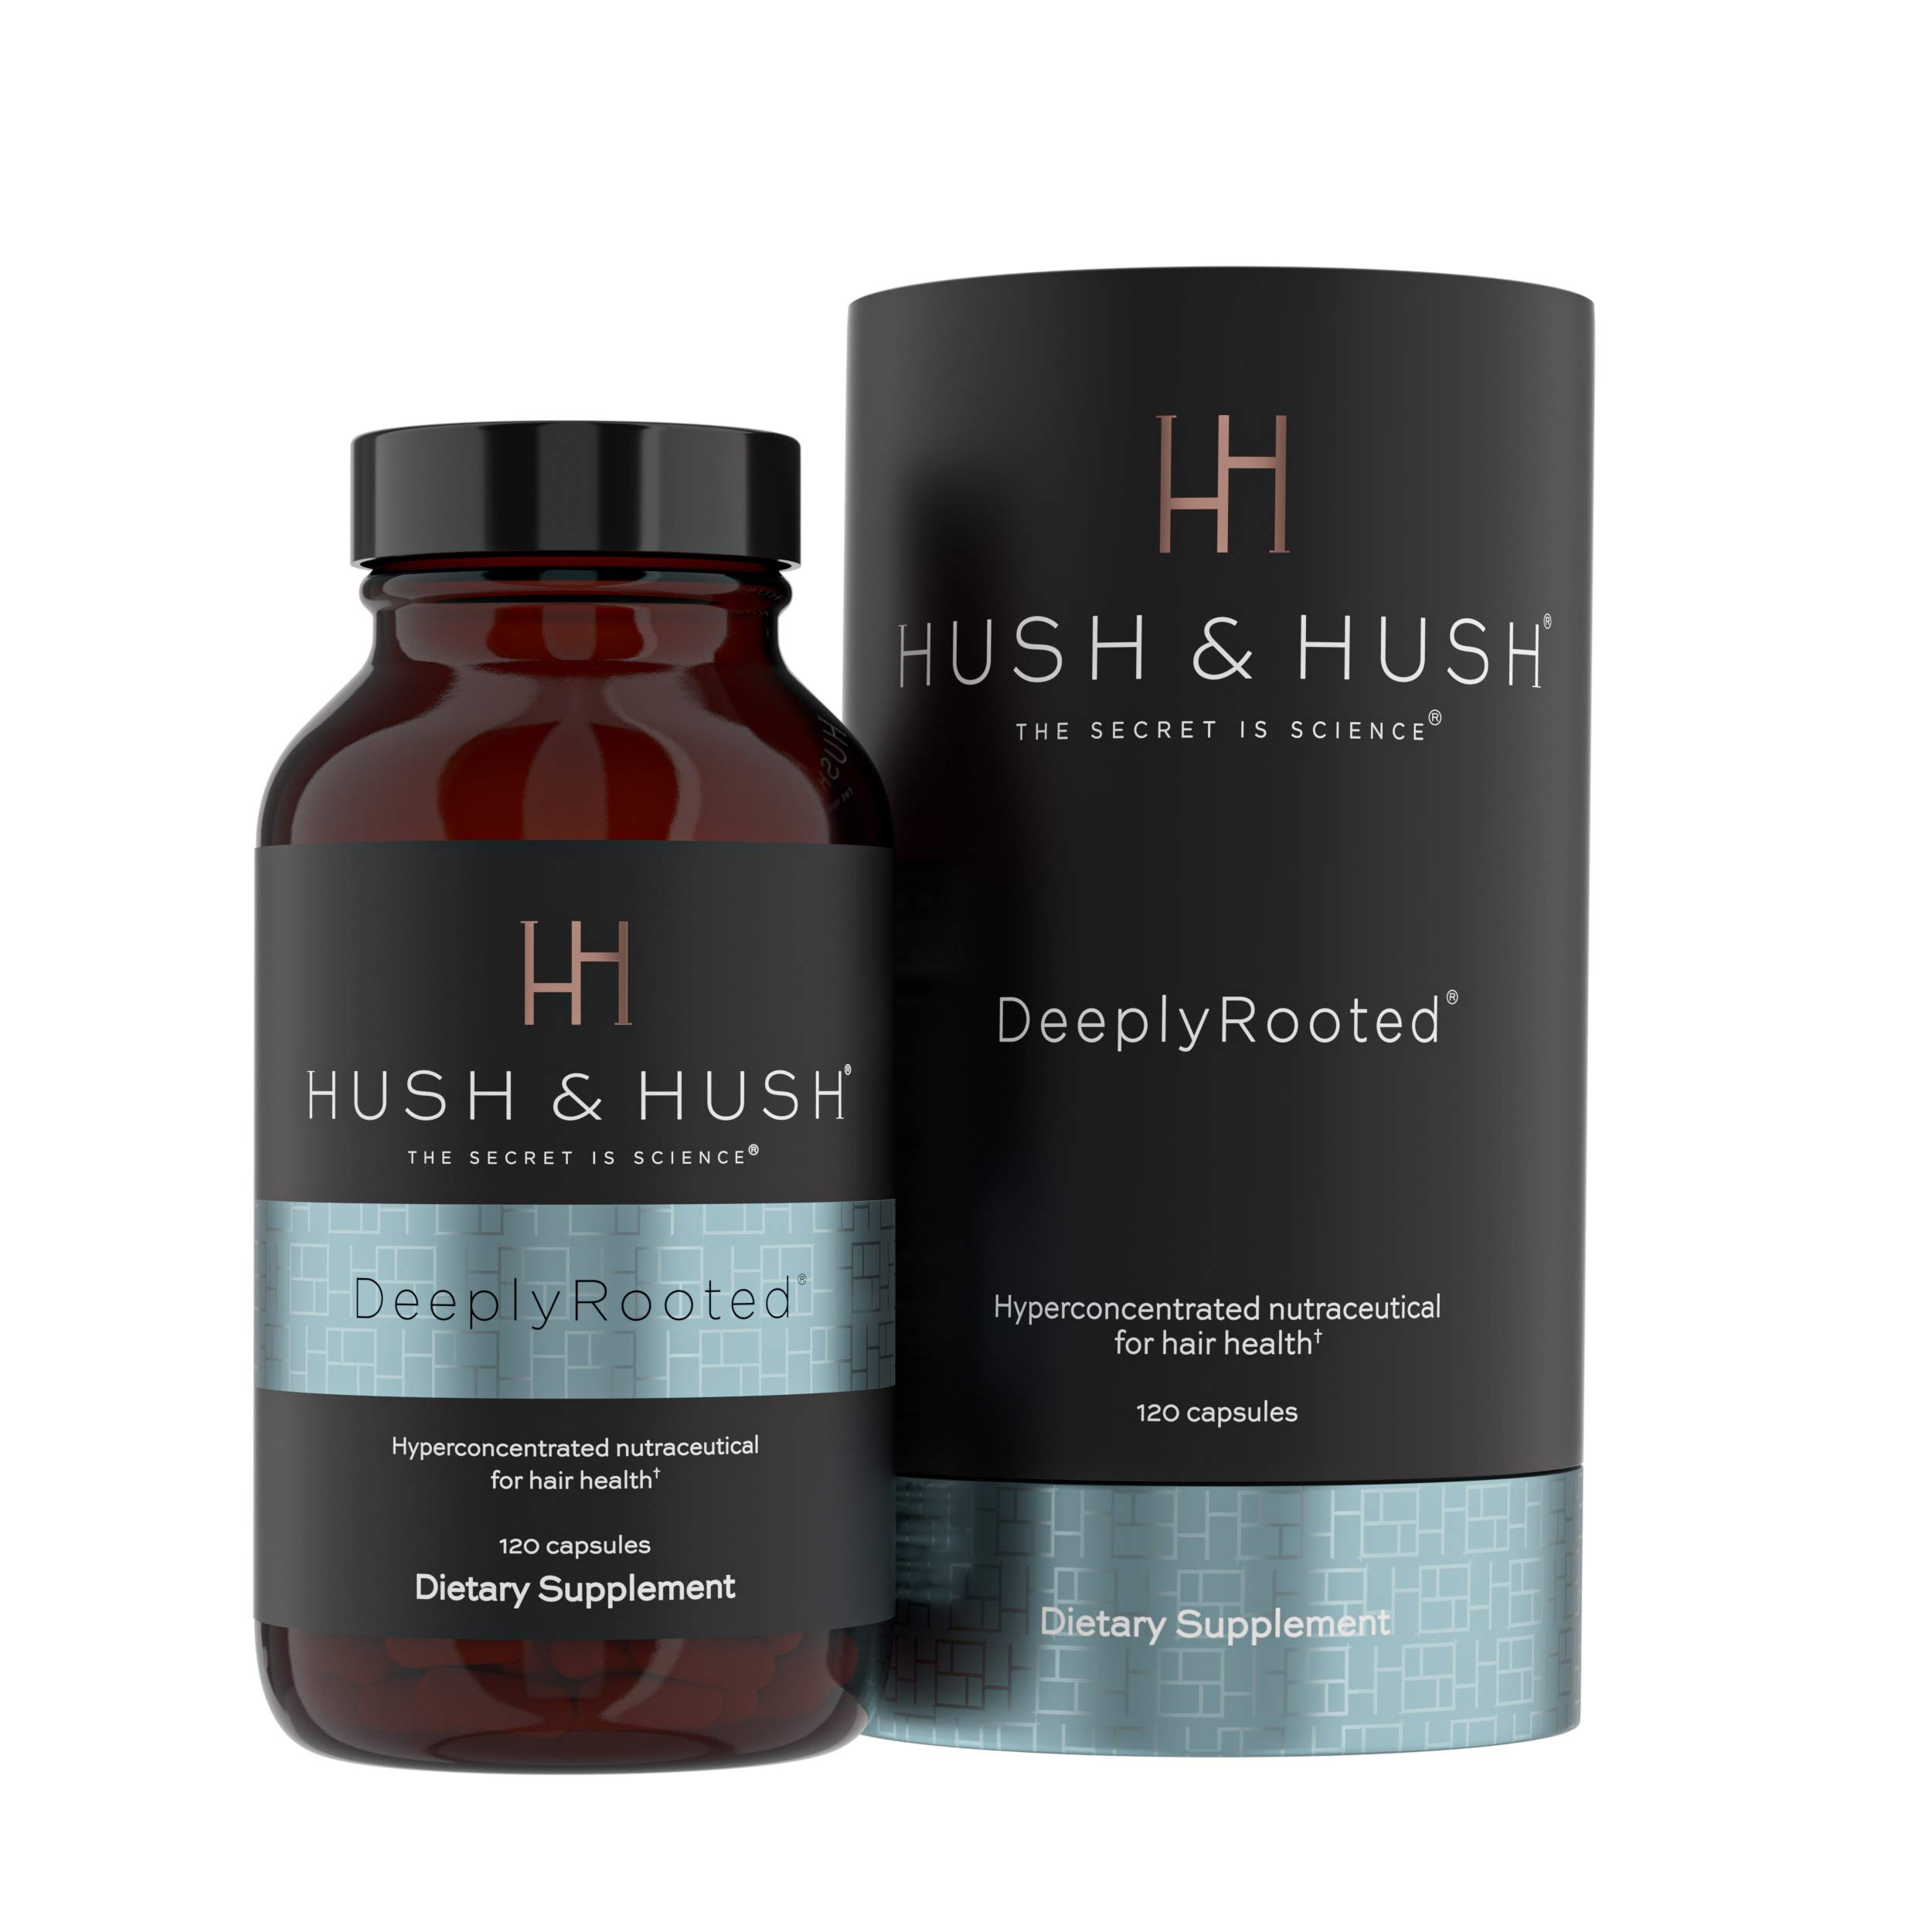 Hush & Hush DeeplyRooted Hair Supplement For Stronger, Healthier Hair - Collagen Hair Growth Pills For Men & Women - Biotin For Hair Loss - Hair Care For Thinning Hair - Clinically Proven to Increase Hair Regrowth - 120 Capsules